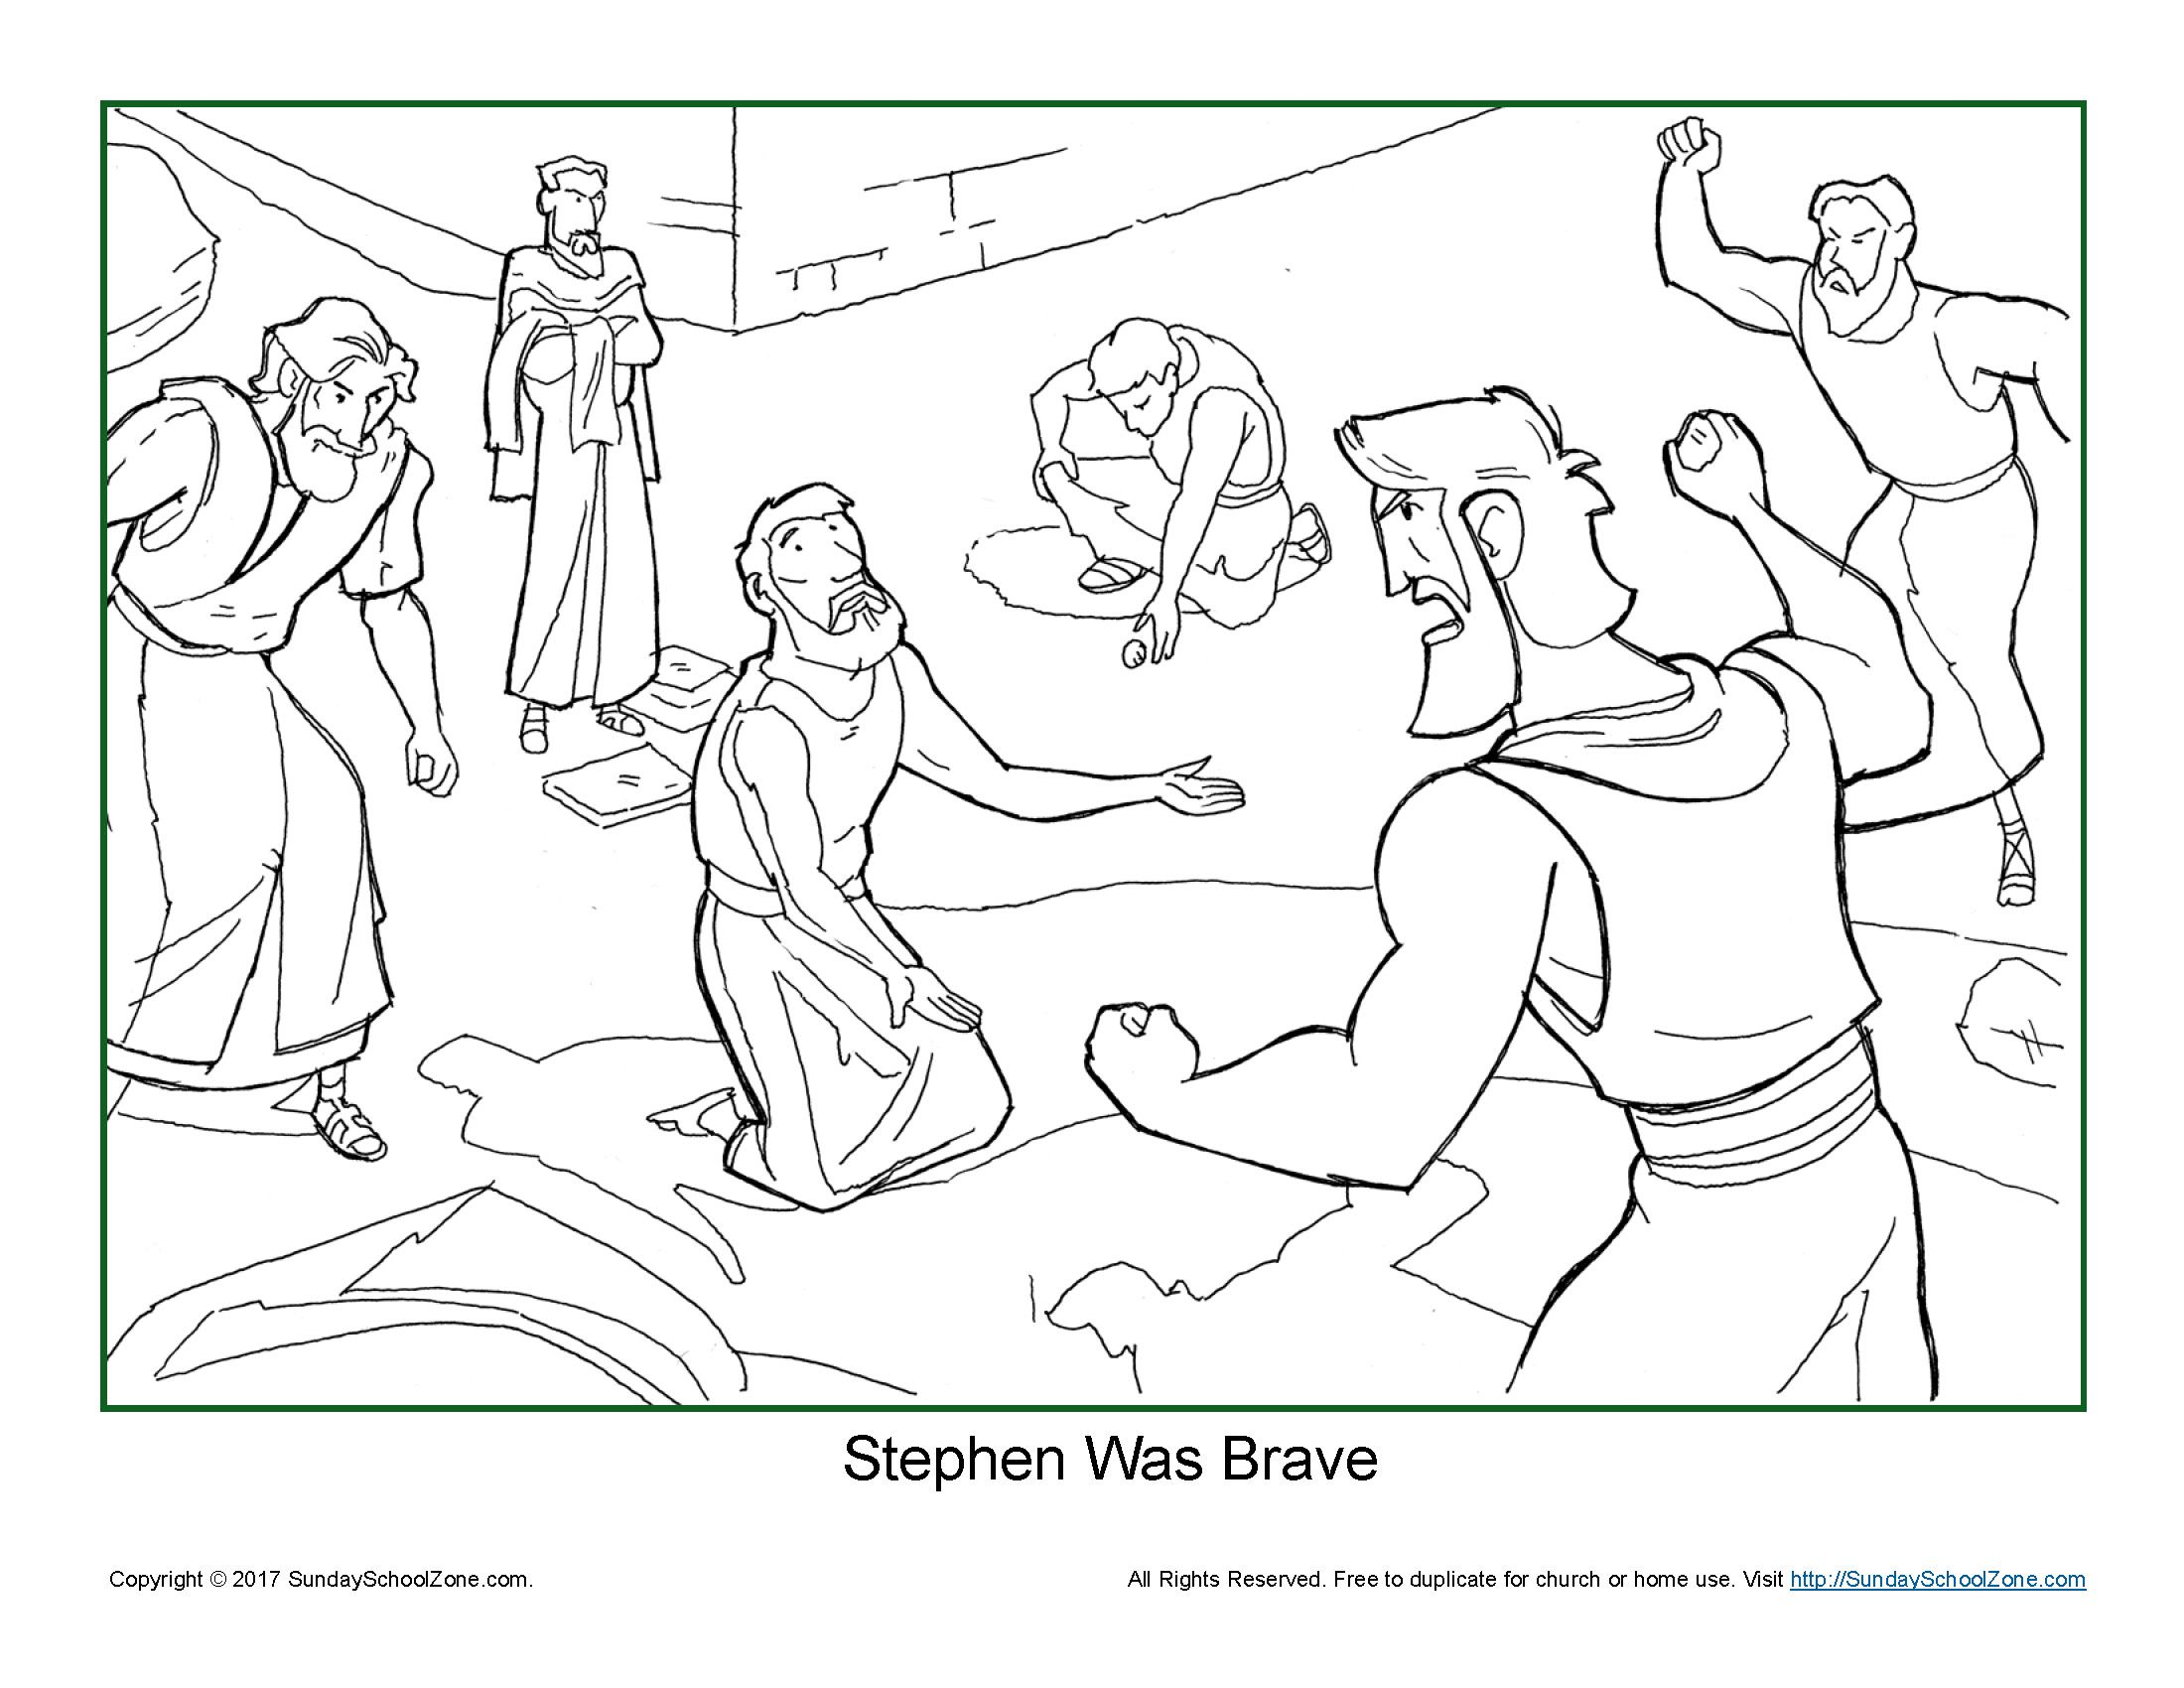 Stephen Was Brave Coloring Page On Sunday School Zone Sunday